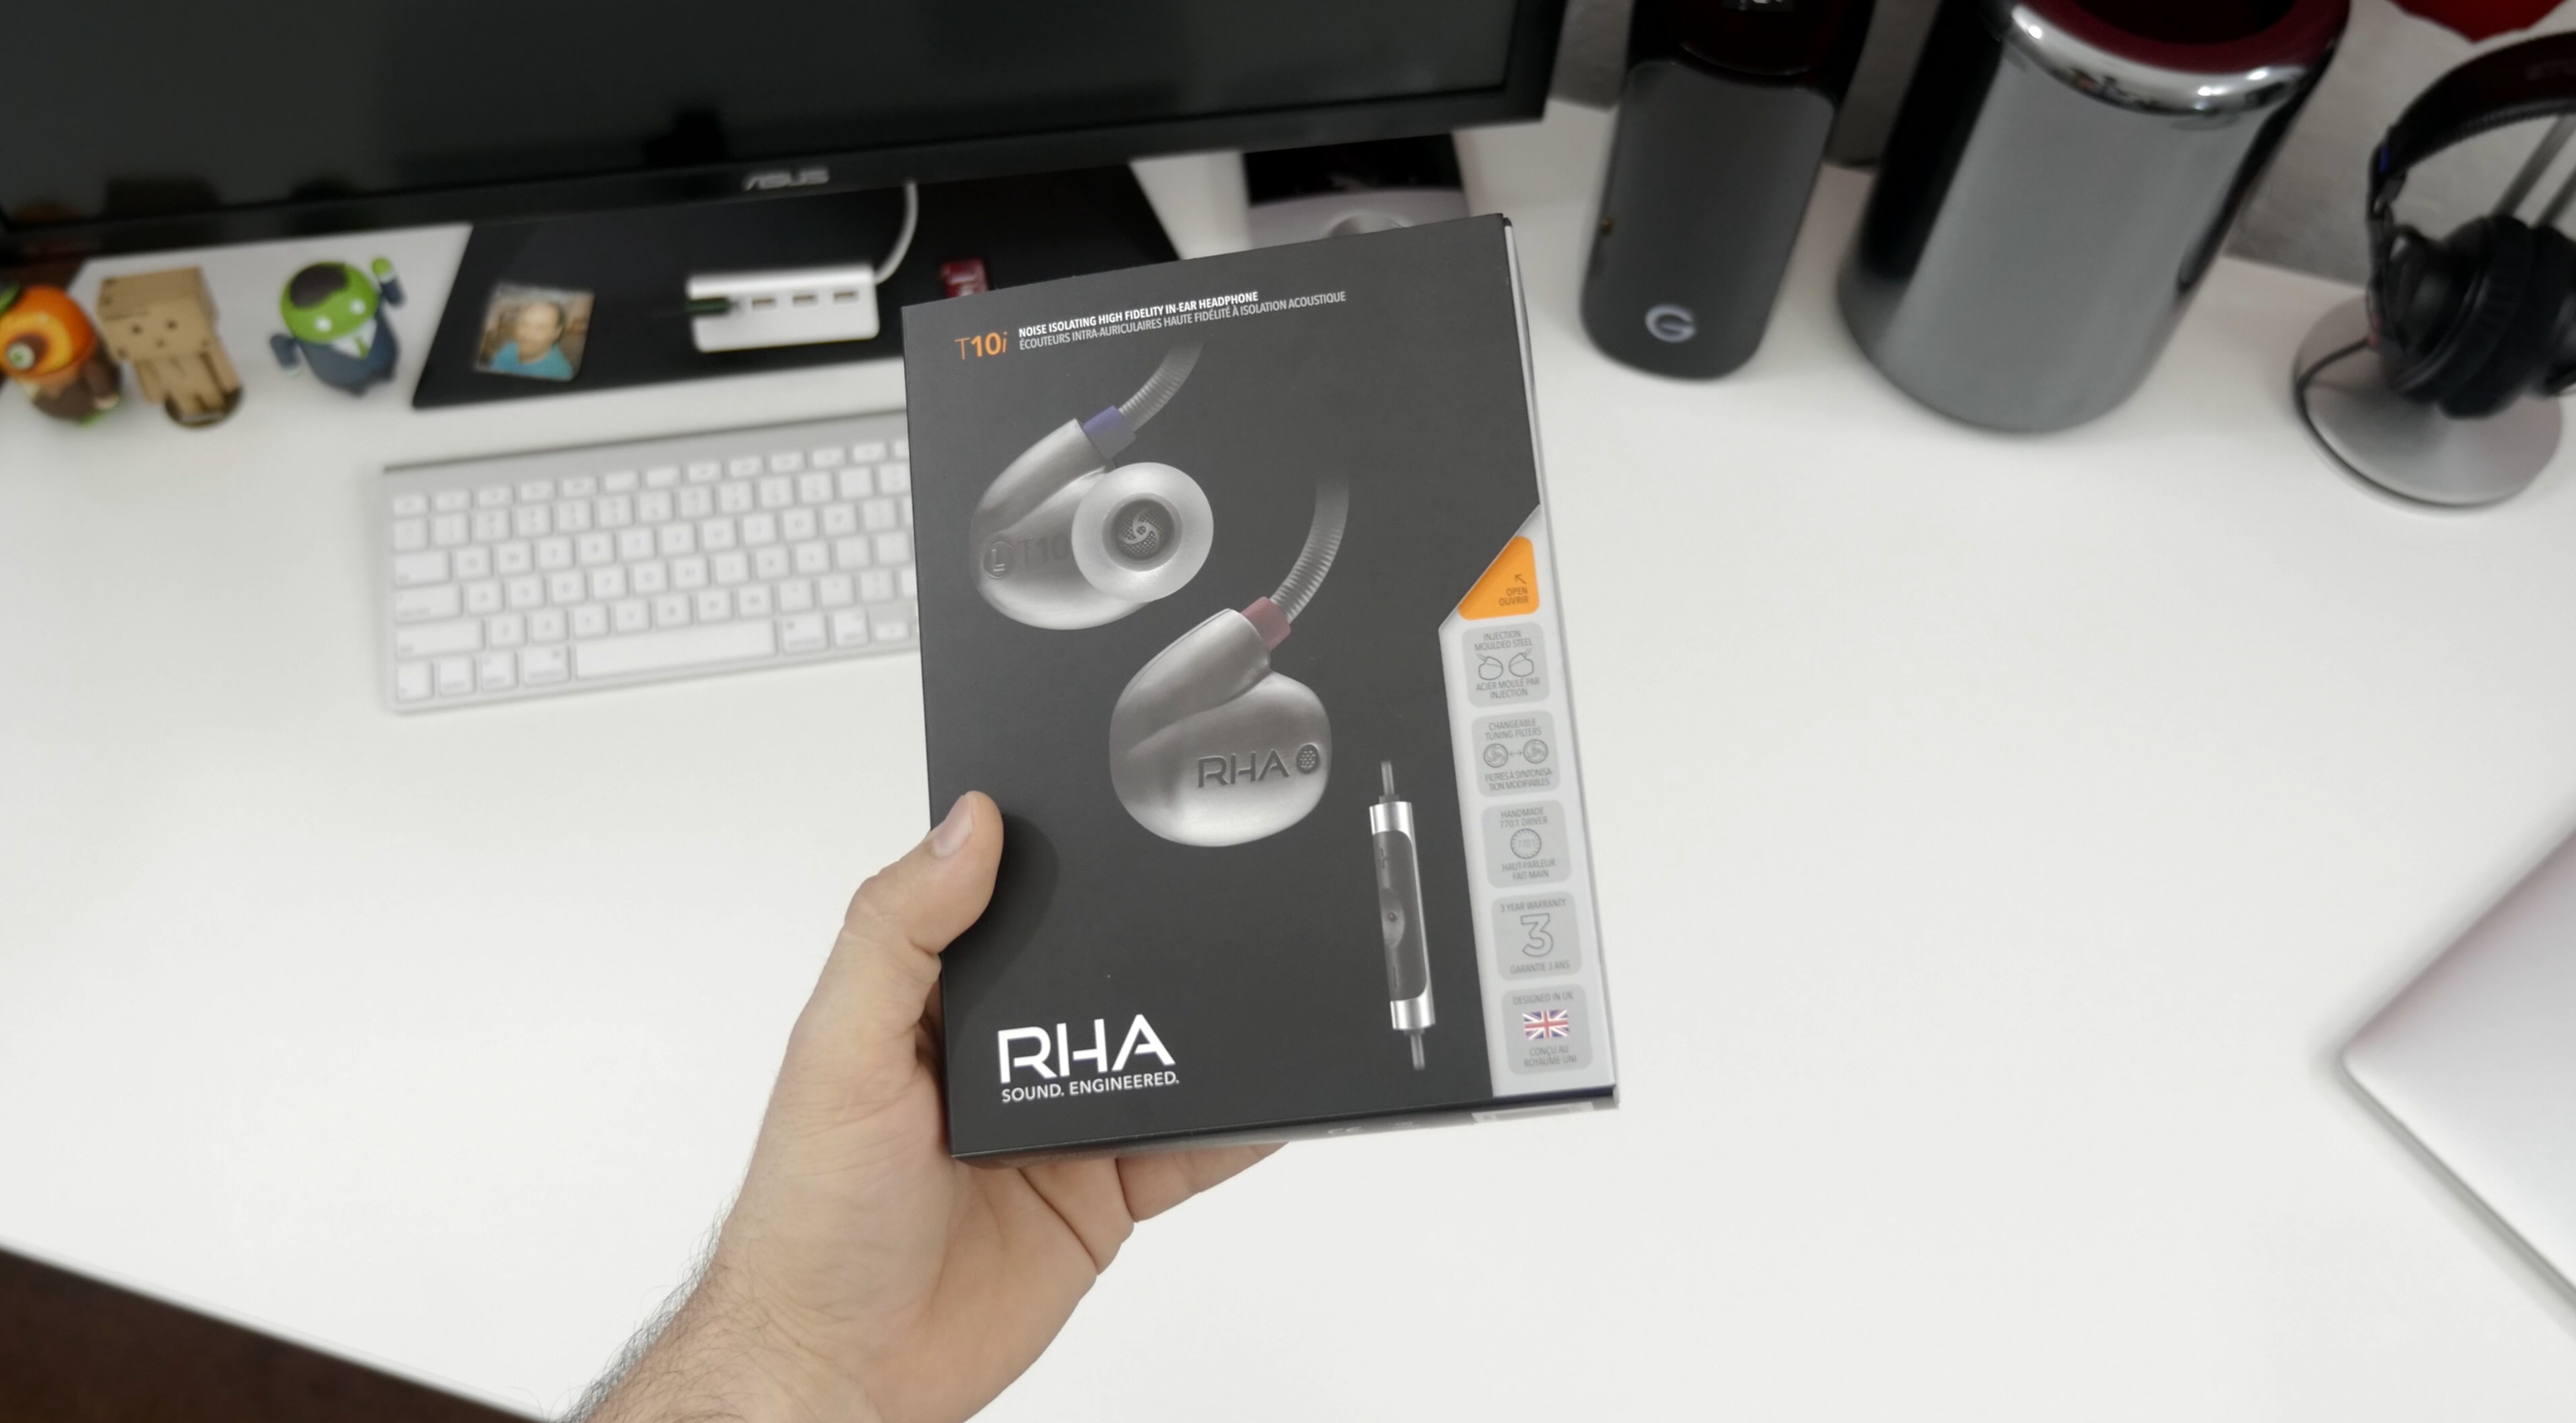 Review: RHA's T10i in-ear headphones are iPhone-friendly